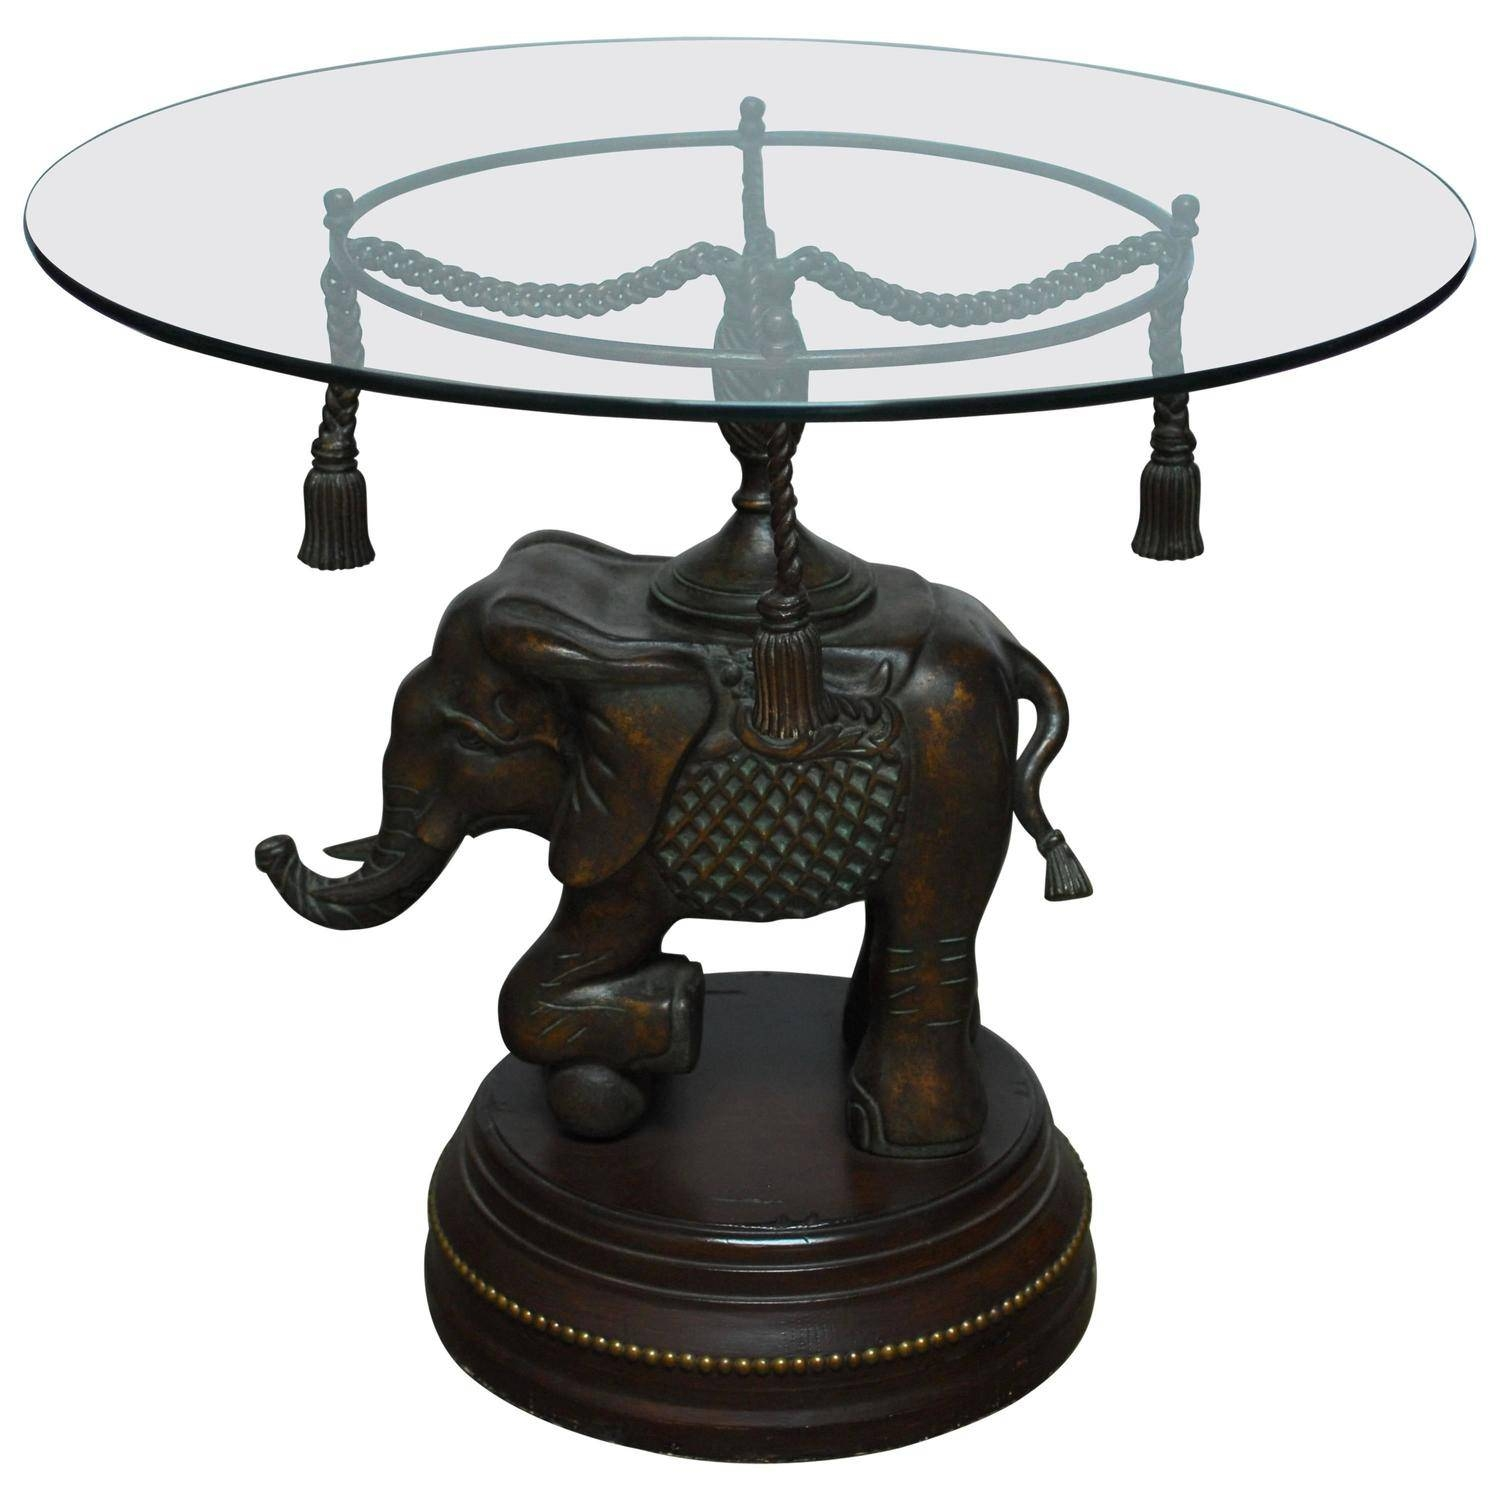 Bronze Elephant Pedestal Side Table For Sale At 1Stdibs intended for Elephant Coffee Tables With Glass Top (Image 7 of 30)